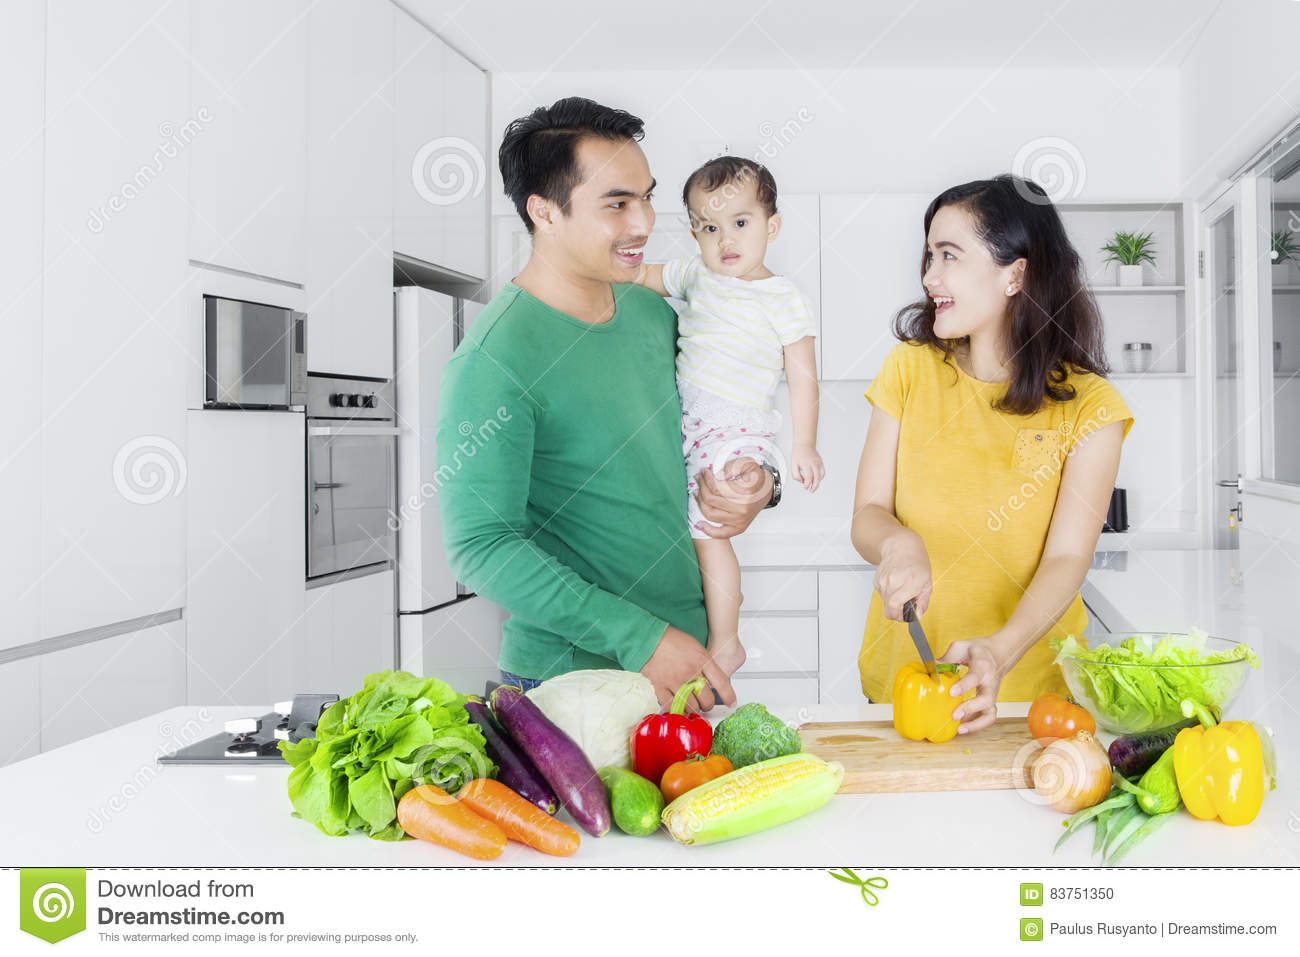 Family cooking kitchen -  Family Cooking In The Kitchen Download